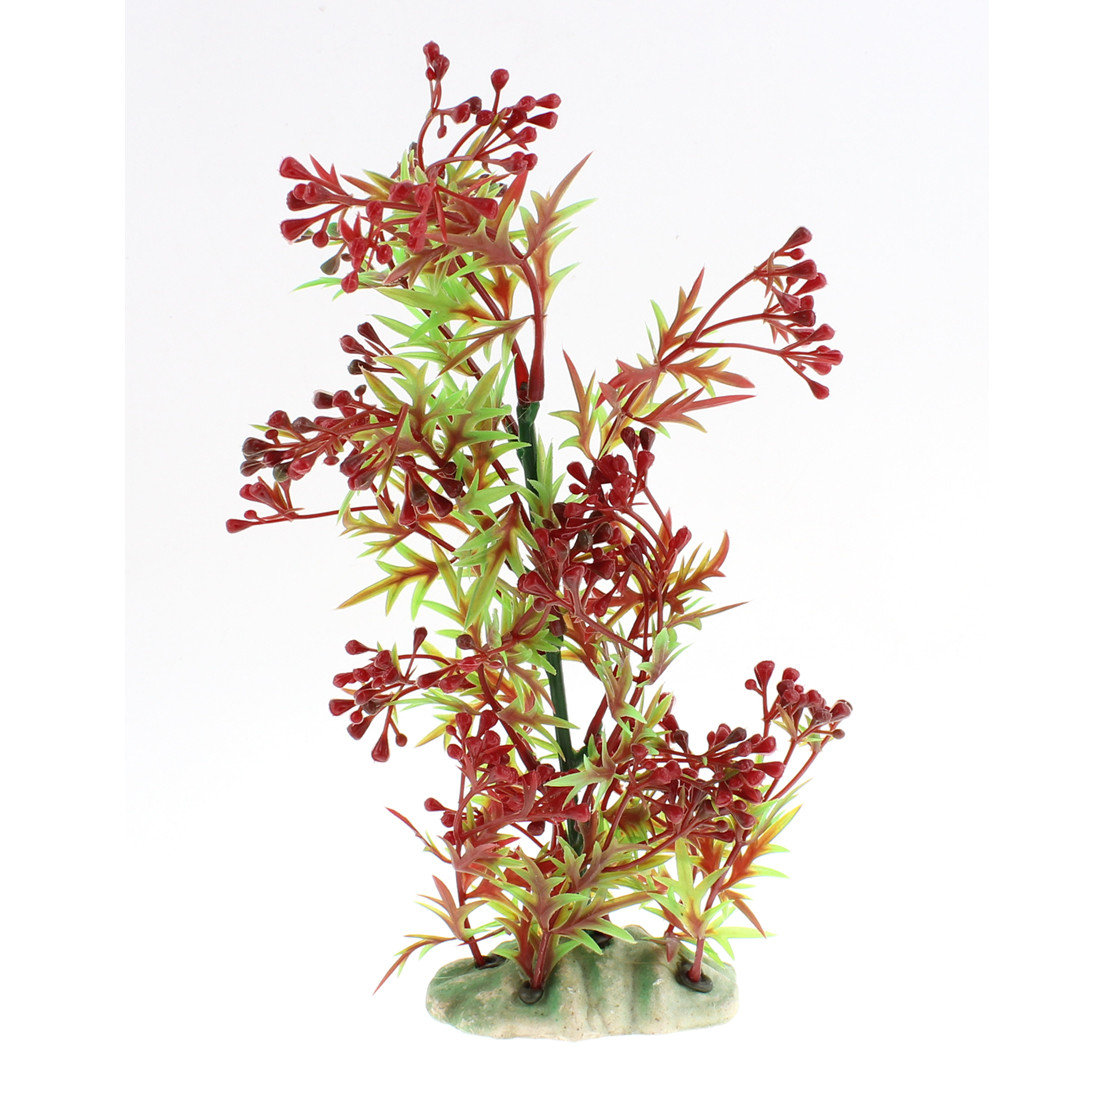 Aquarium Plastic Artificial Landscaping Plant Decor Green Burgundy